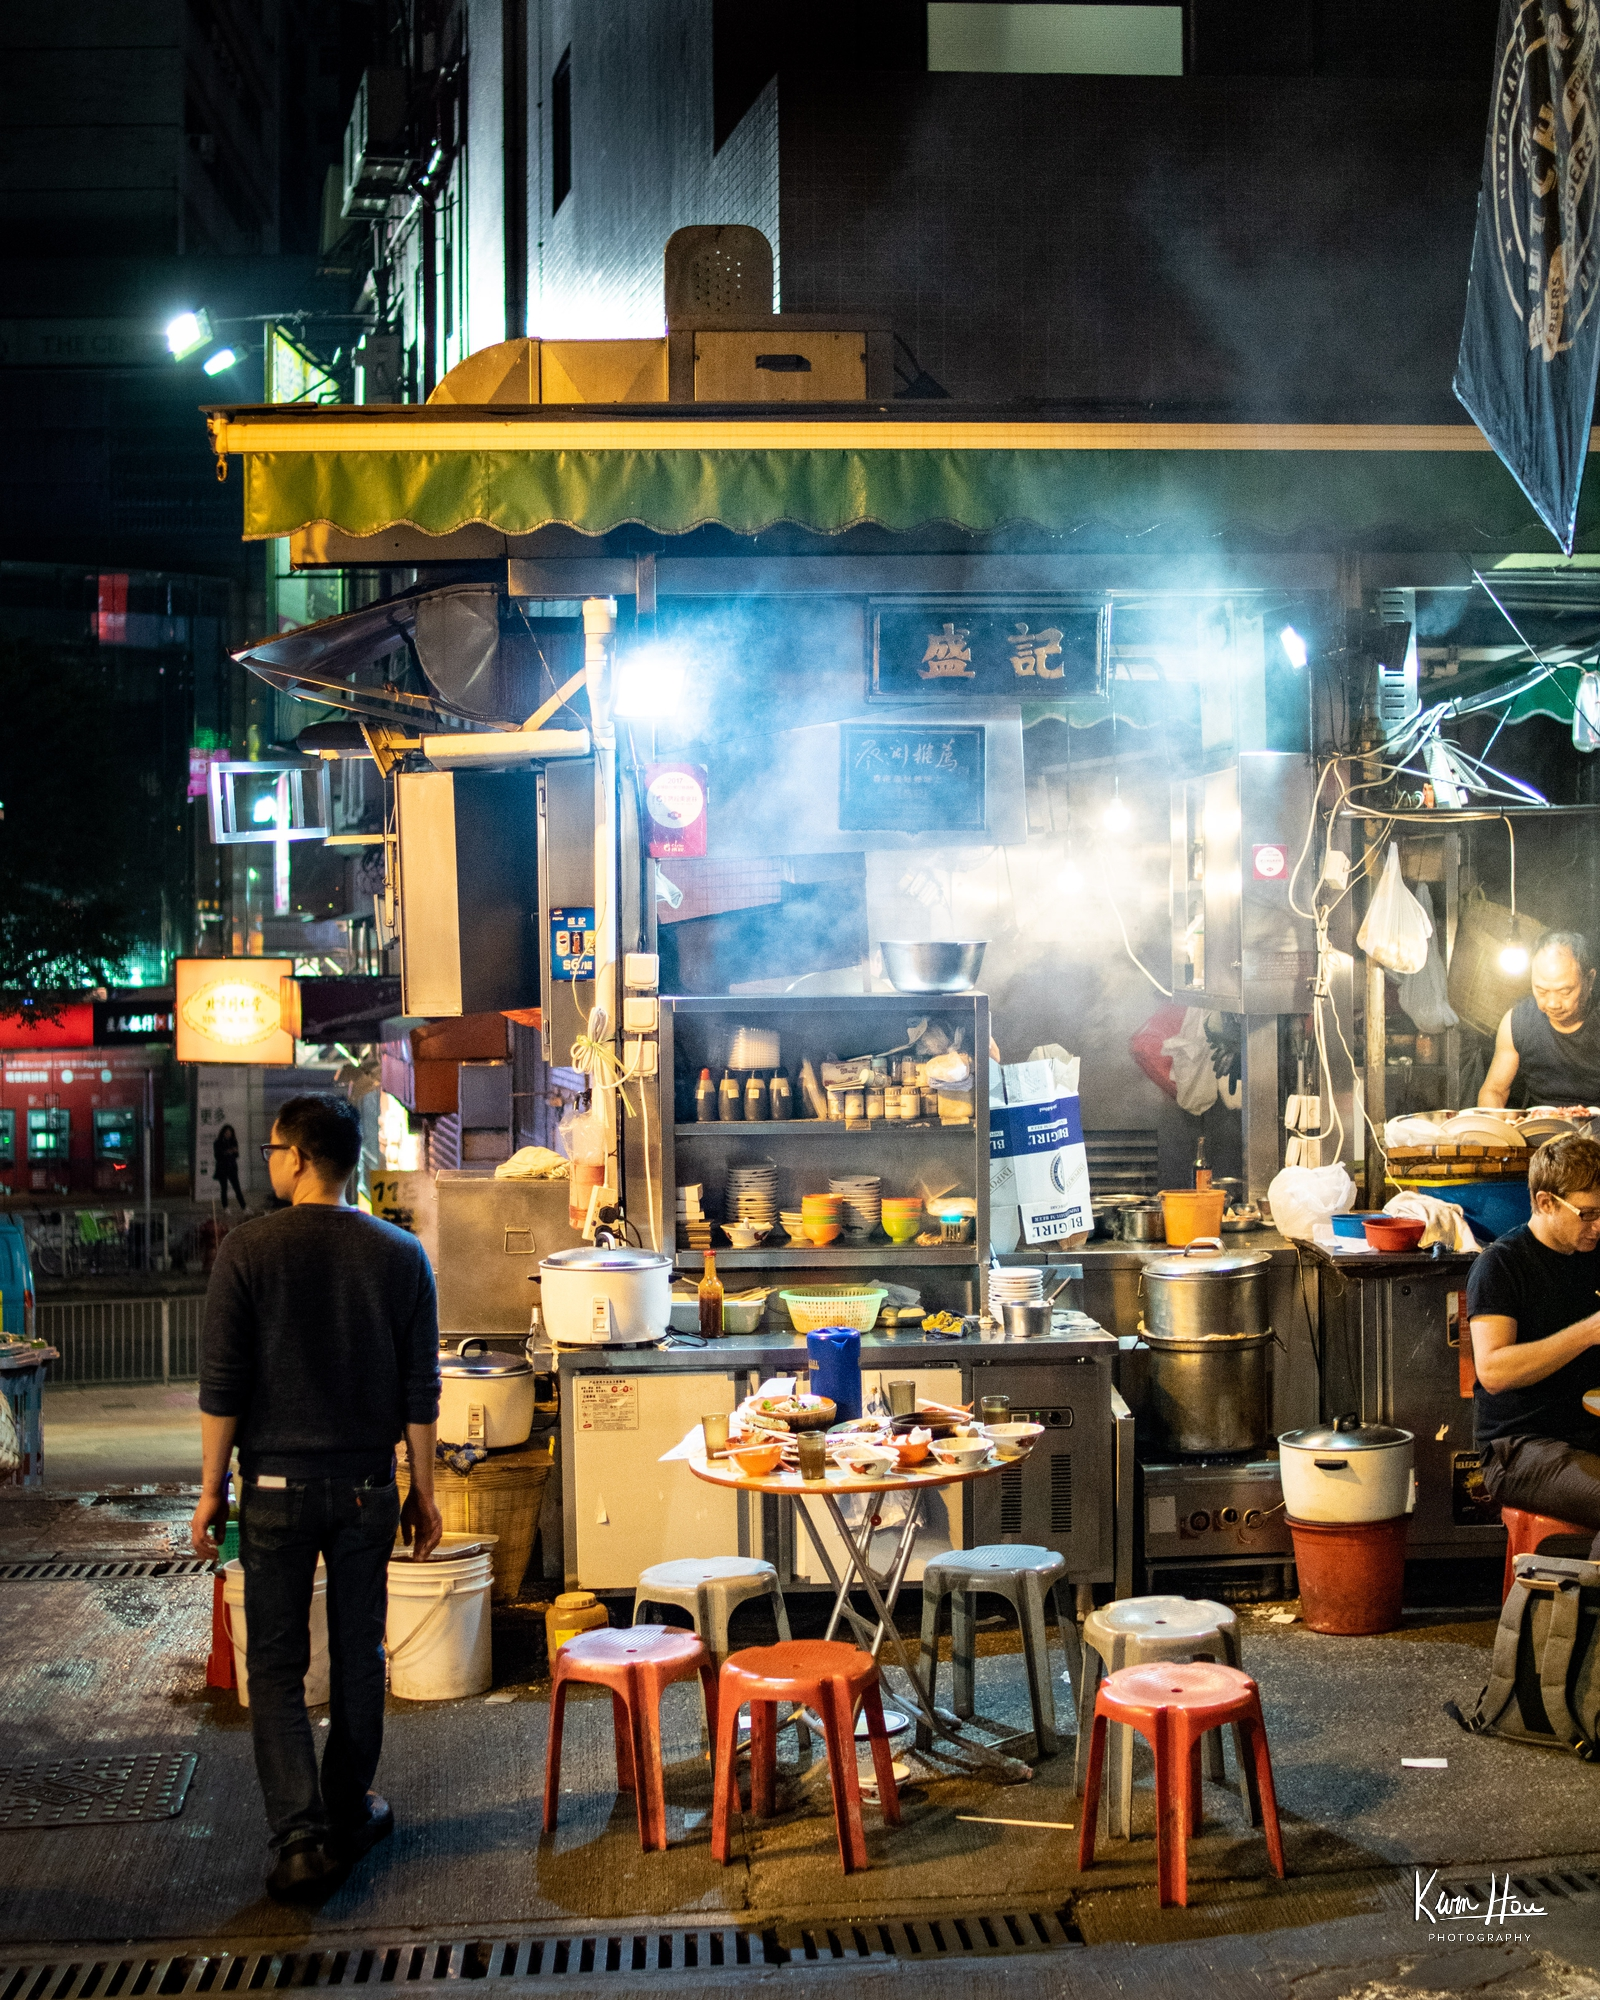 Hong Kong Night Market Food Stand (Vertical)